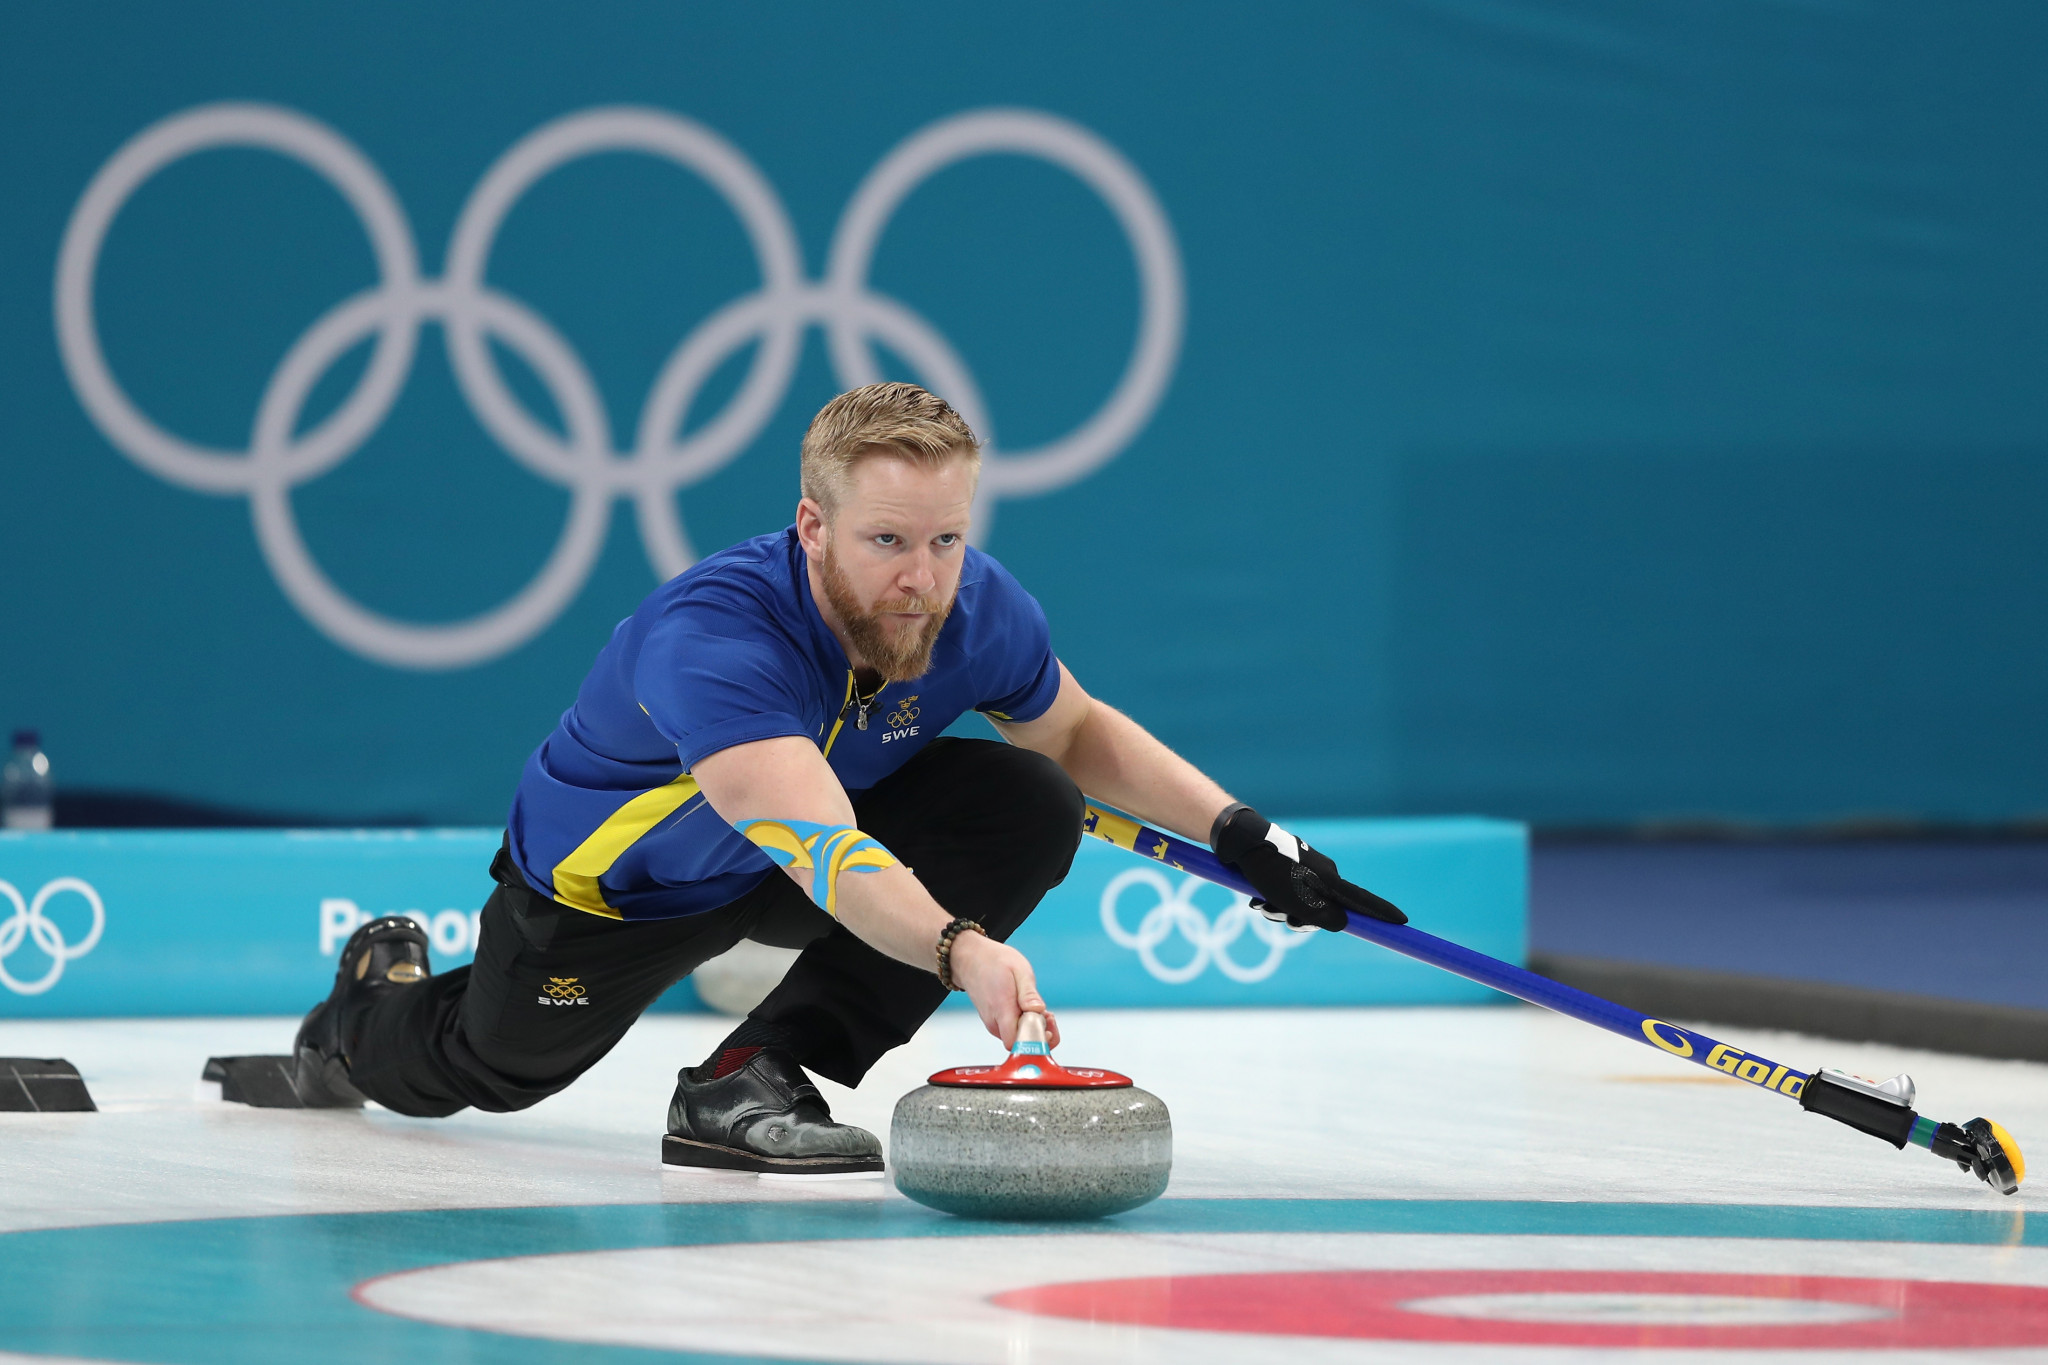 World curling champion Edin admits doubts over future due to funding shortage